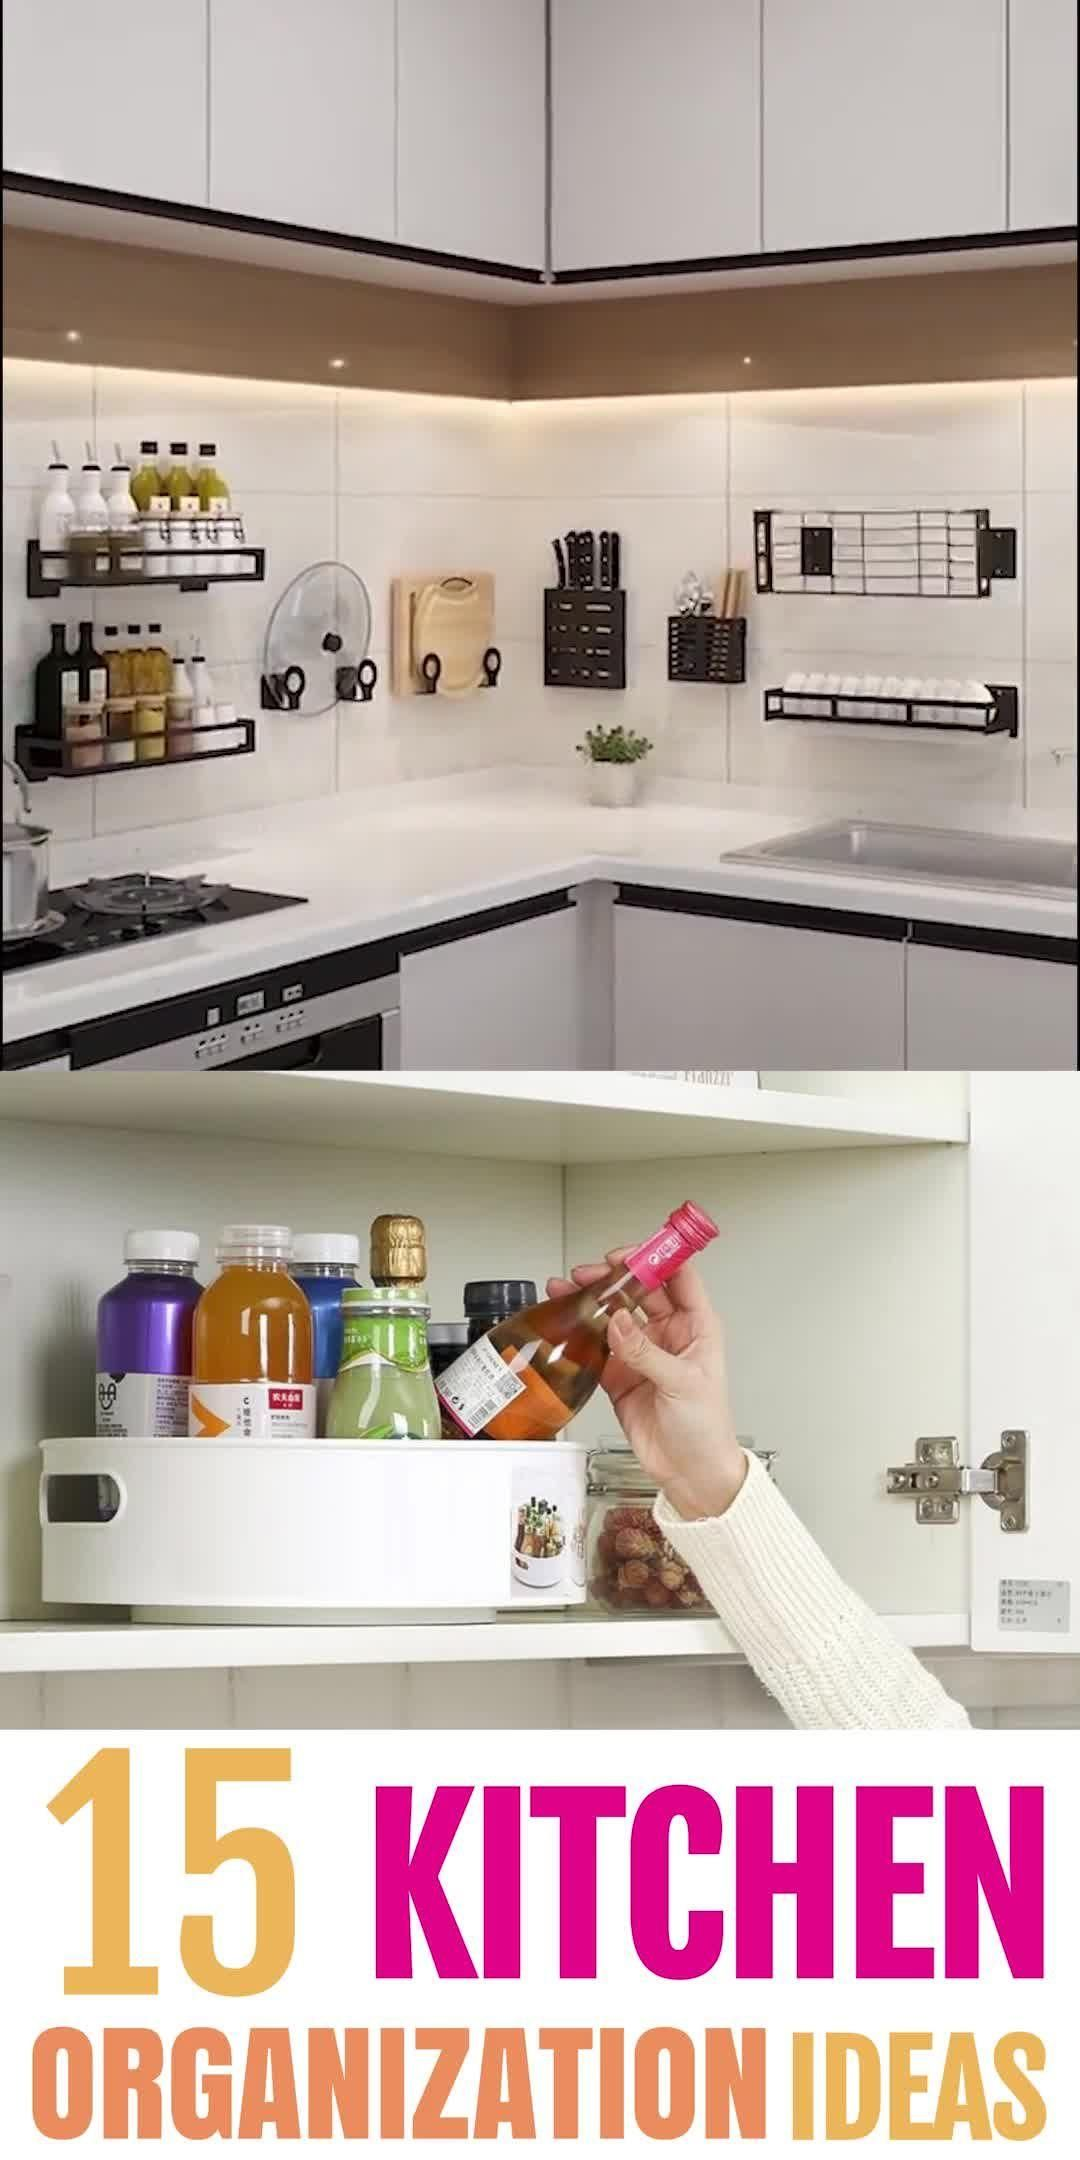 The 15 Amazing Kitchen Organizer you've probably never heard of